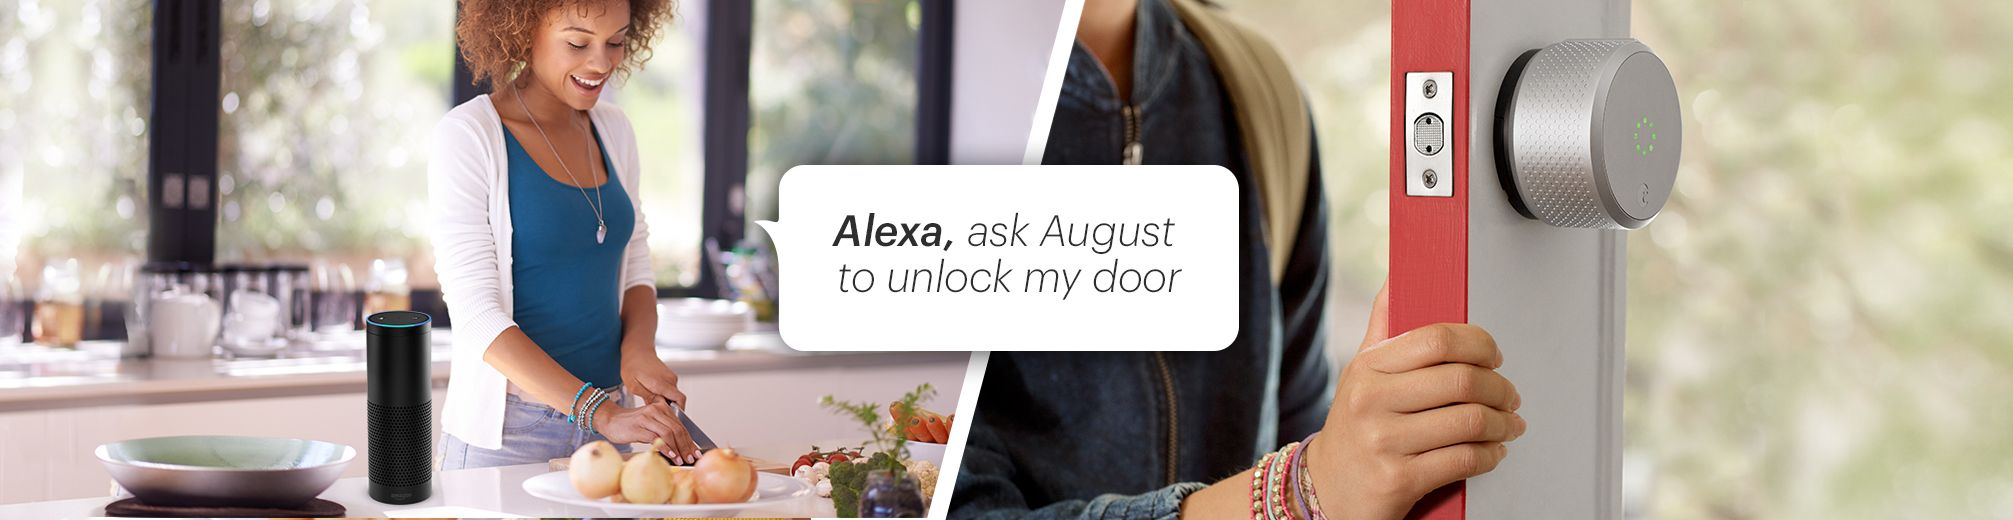 First to Let Amazon Alexa Unlock My Door